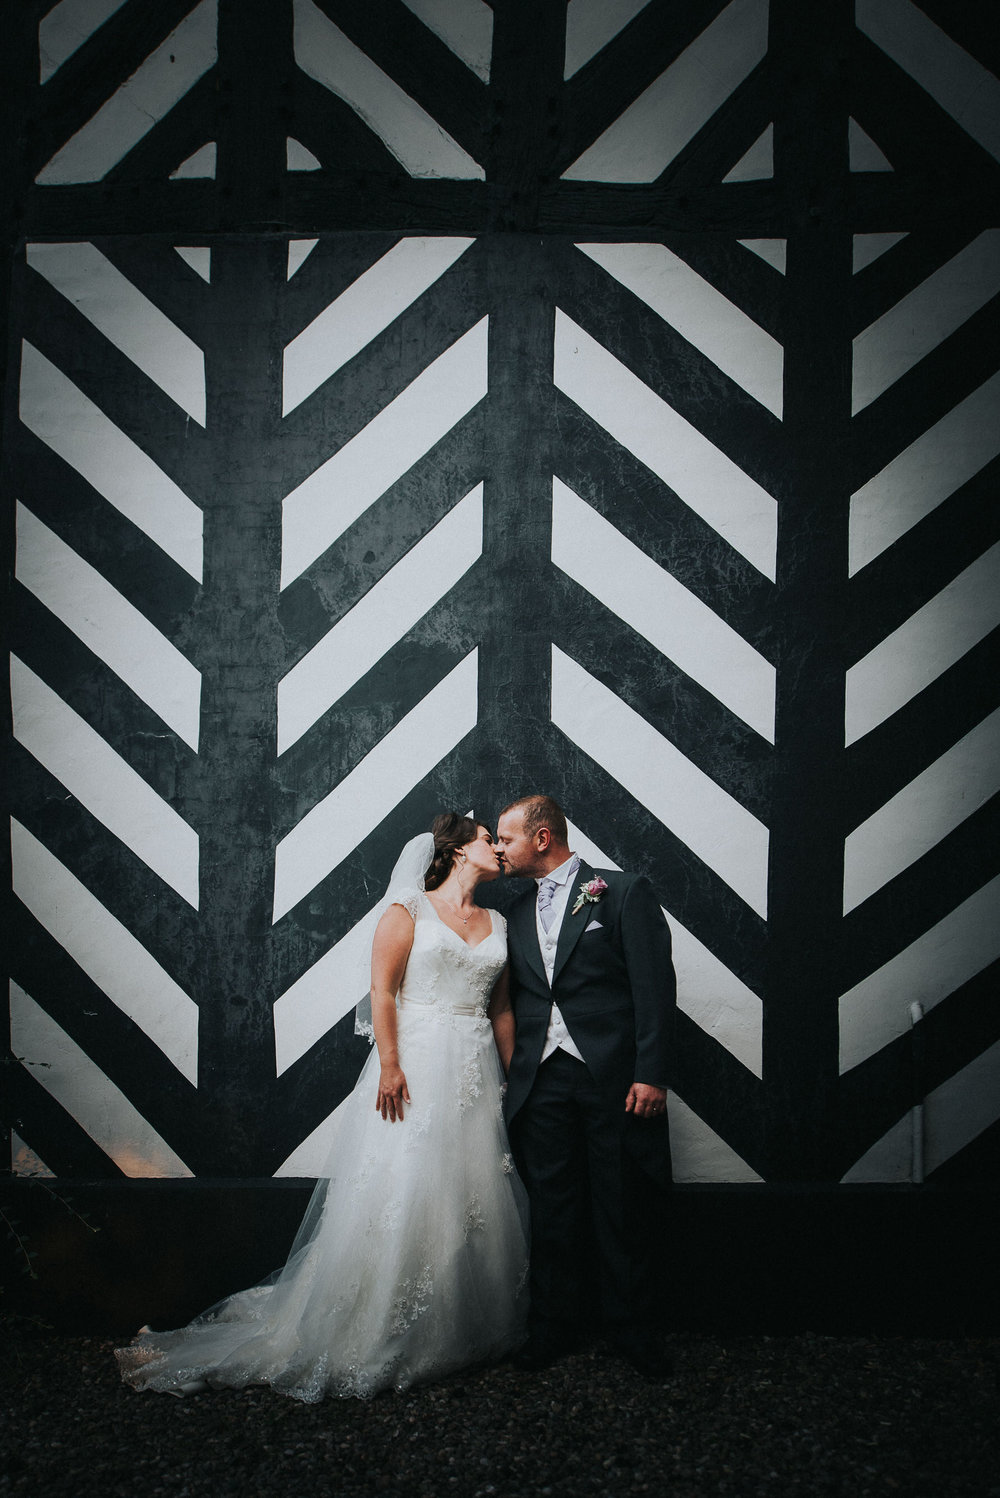 Bride and Groom portrait against black and white background